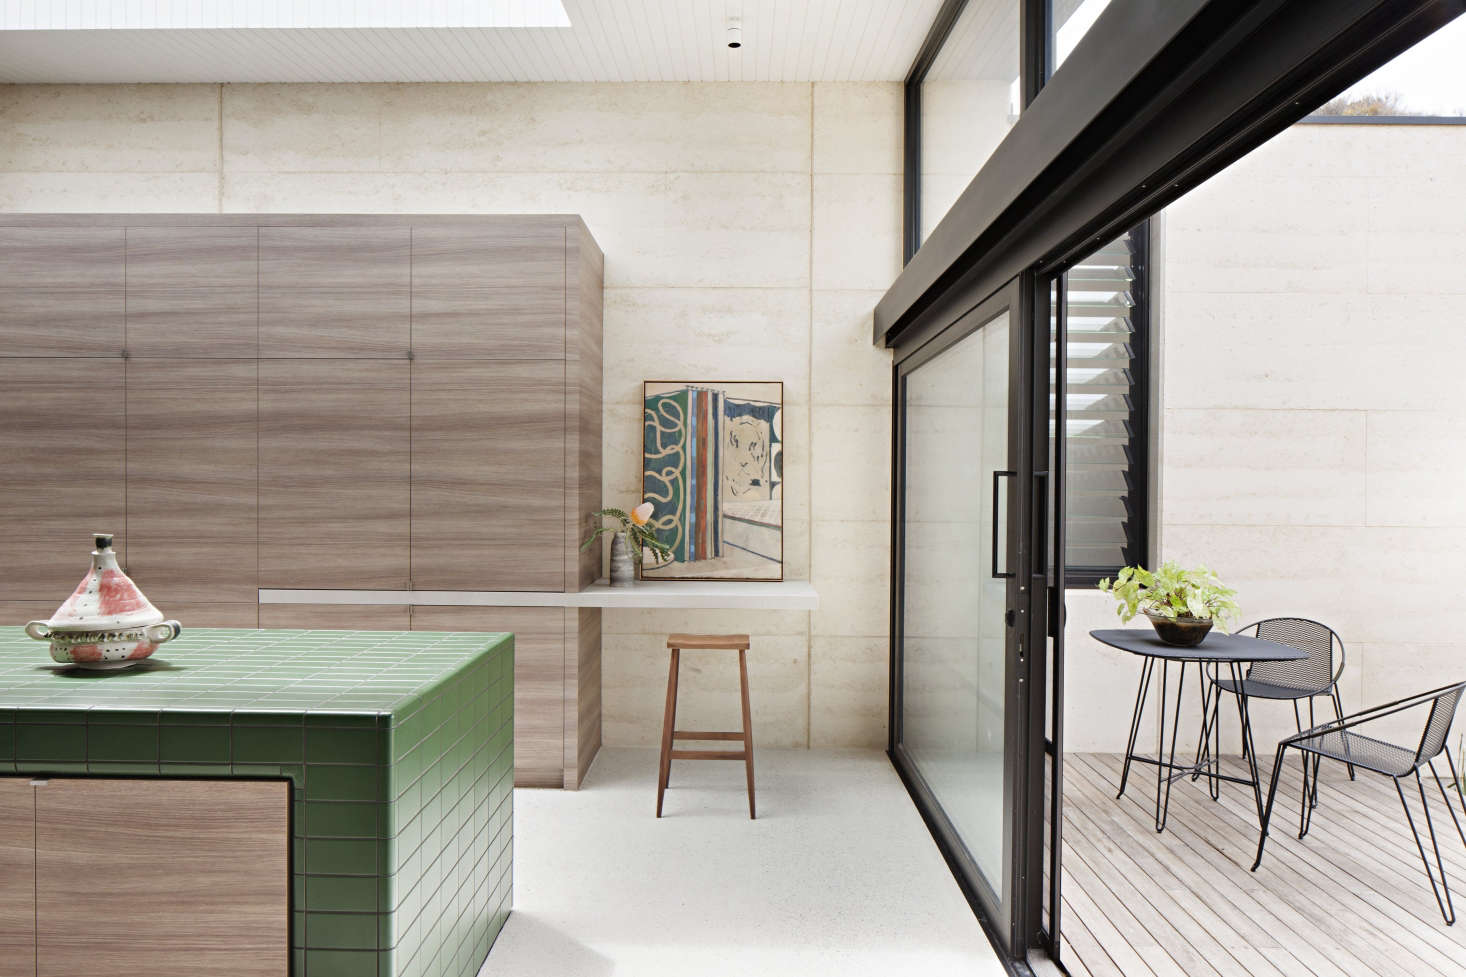 The kitchen opens to a small terrace. The large oak cabinet conceals, among other things, the refrigerator and an appliance cupboard.